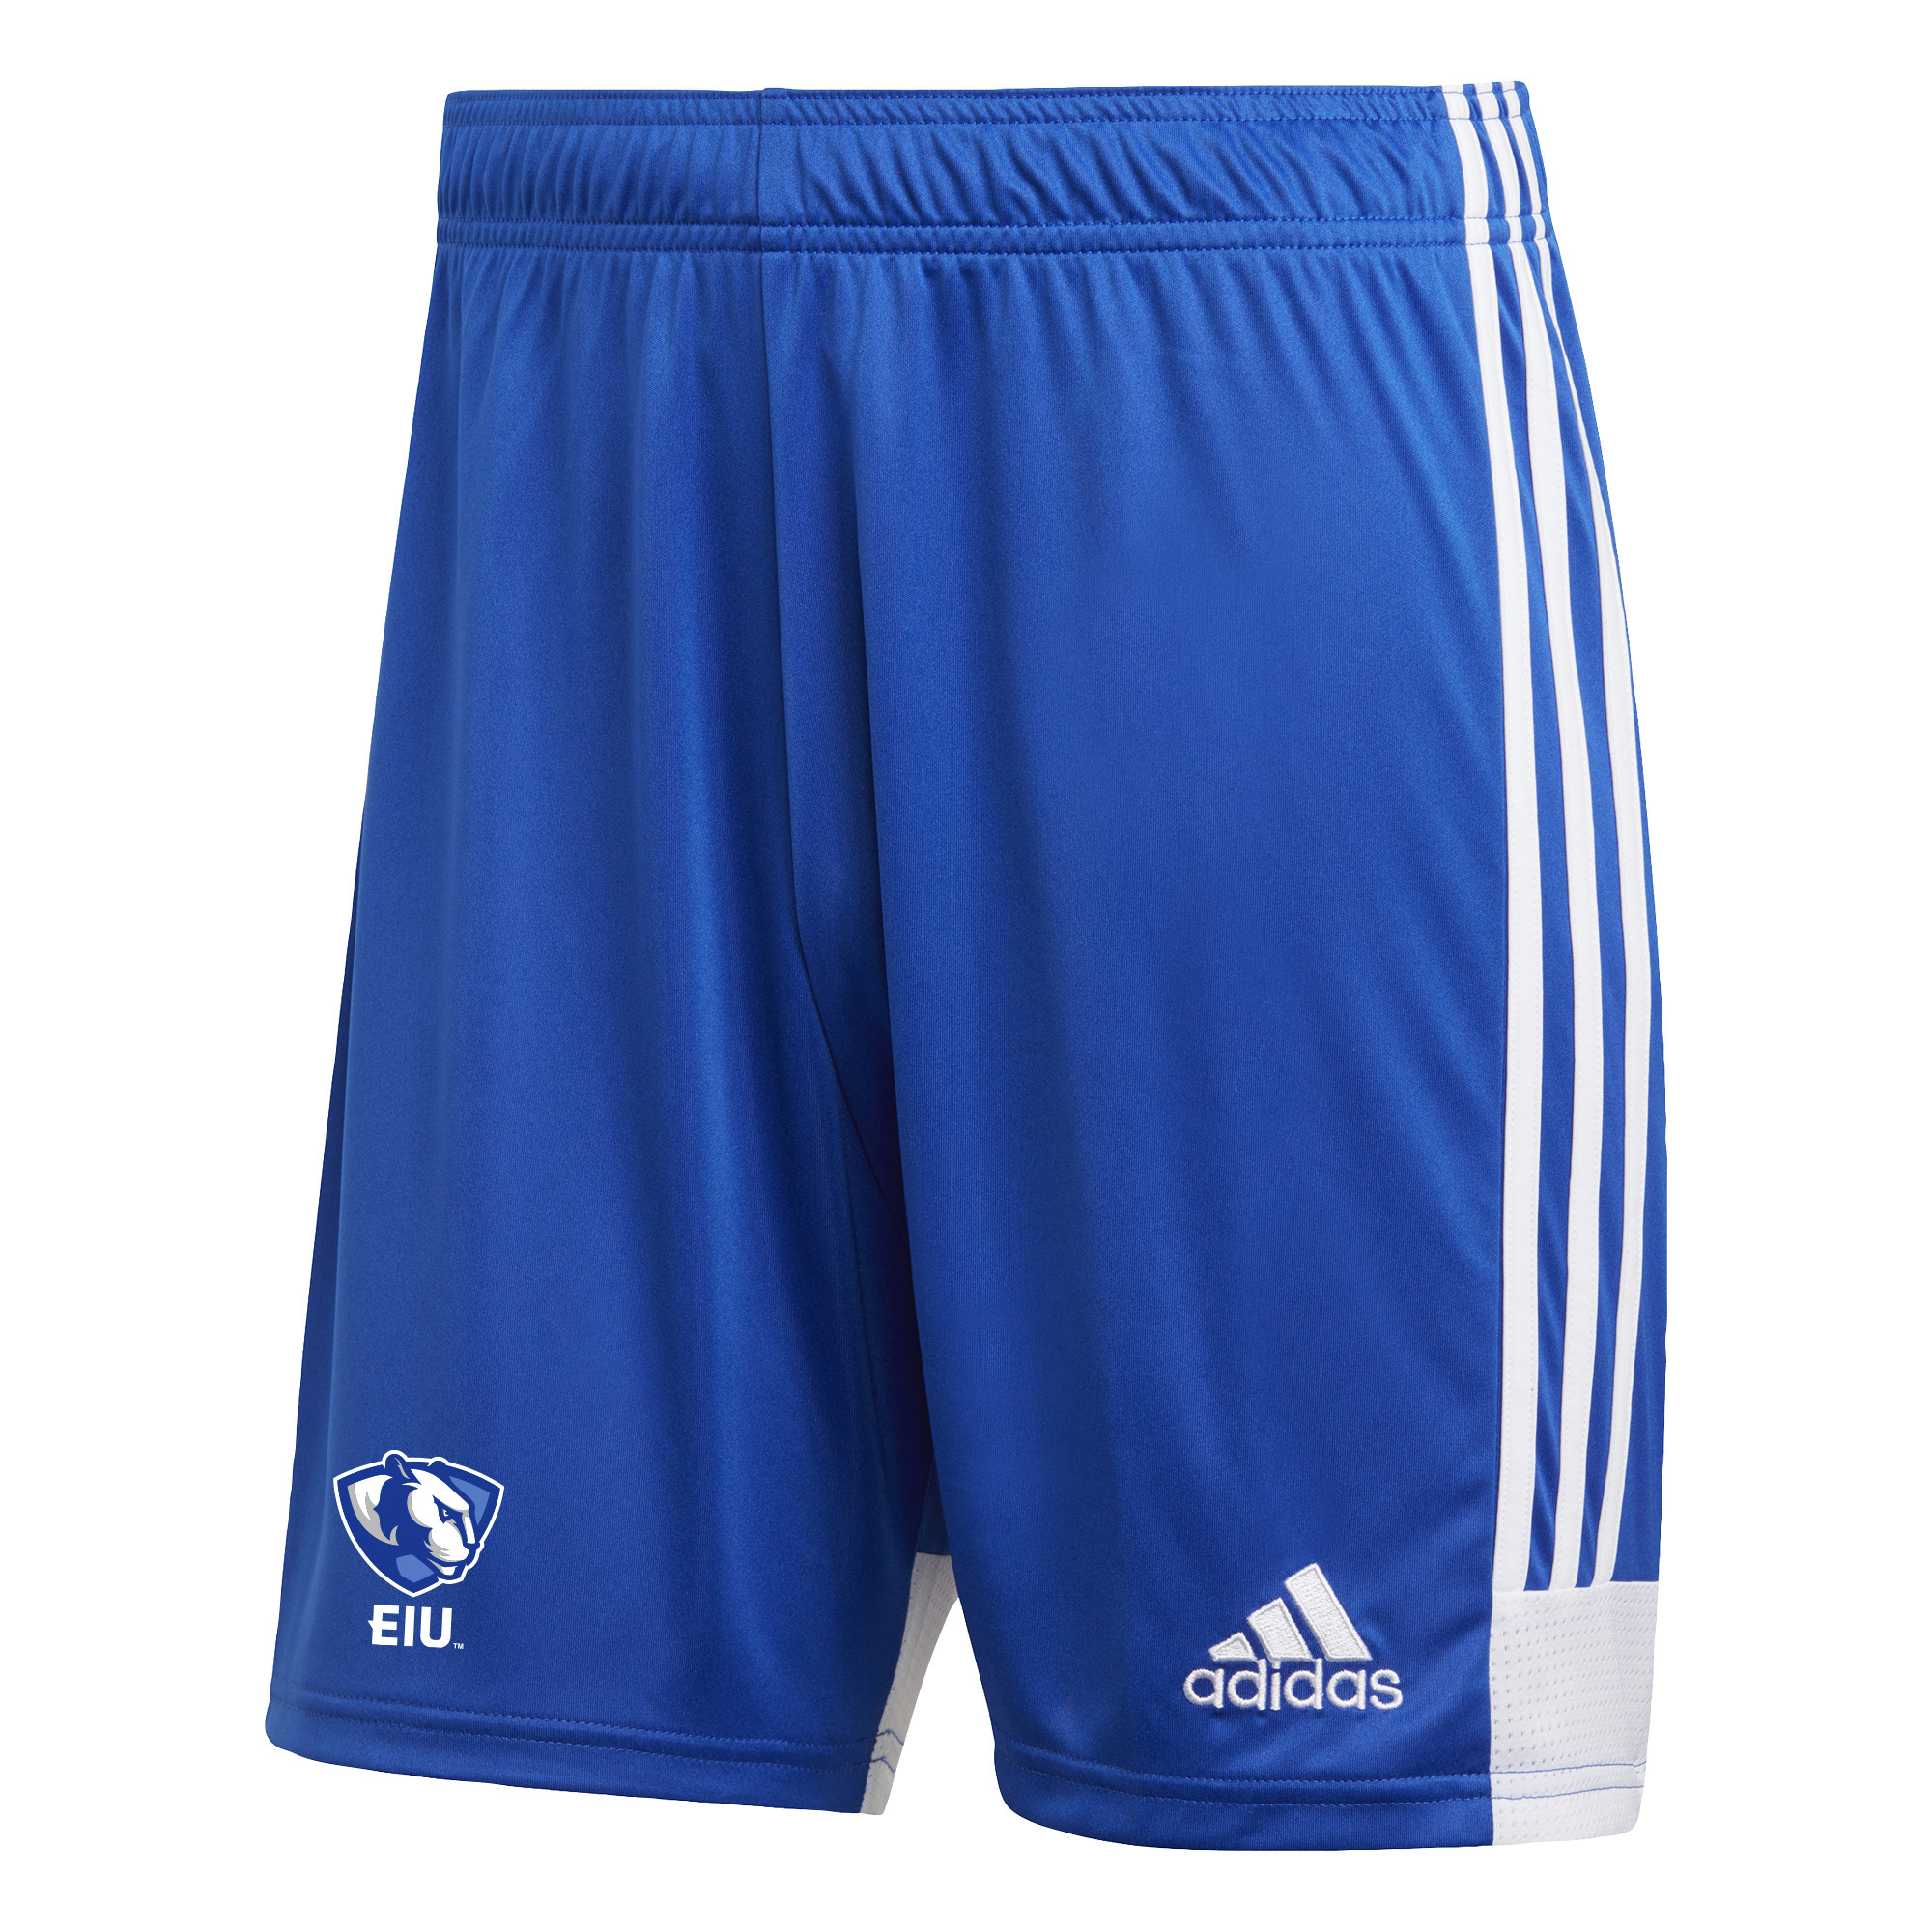 Image For BLU SHORTS PL/EIU